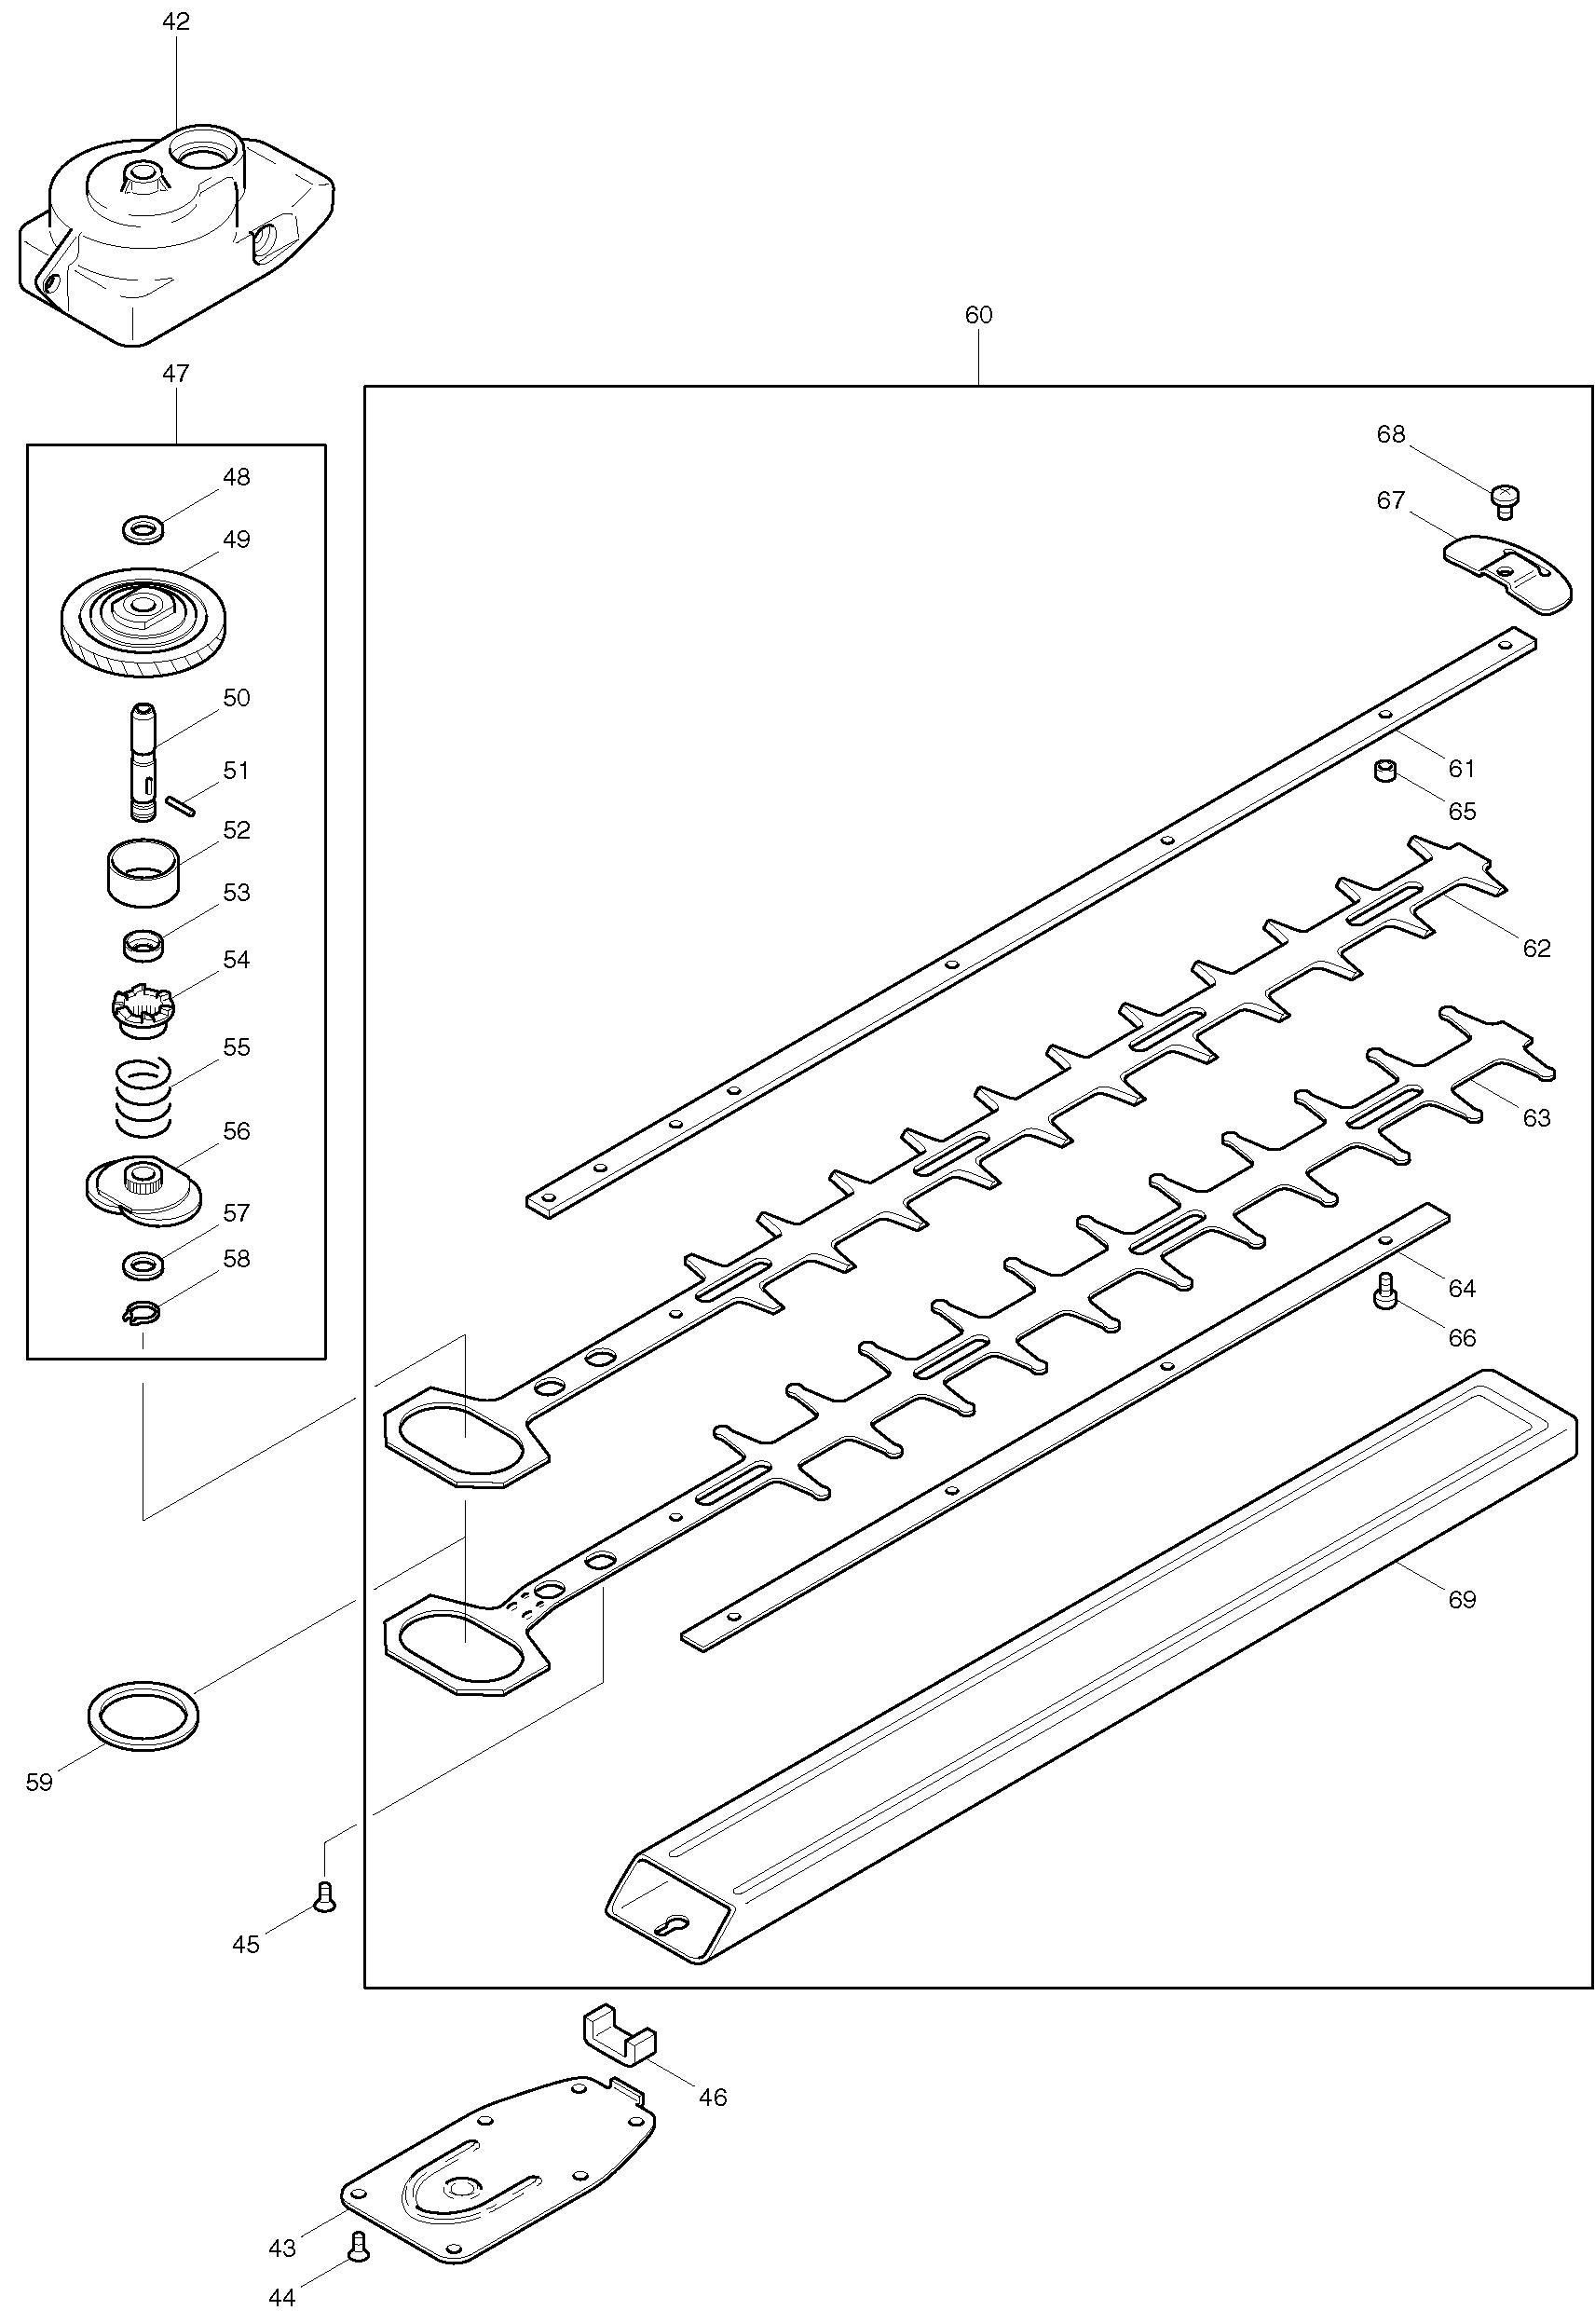 Spares For Makita Uh Electric Hedge Trimmers Spare